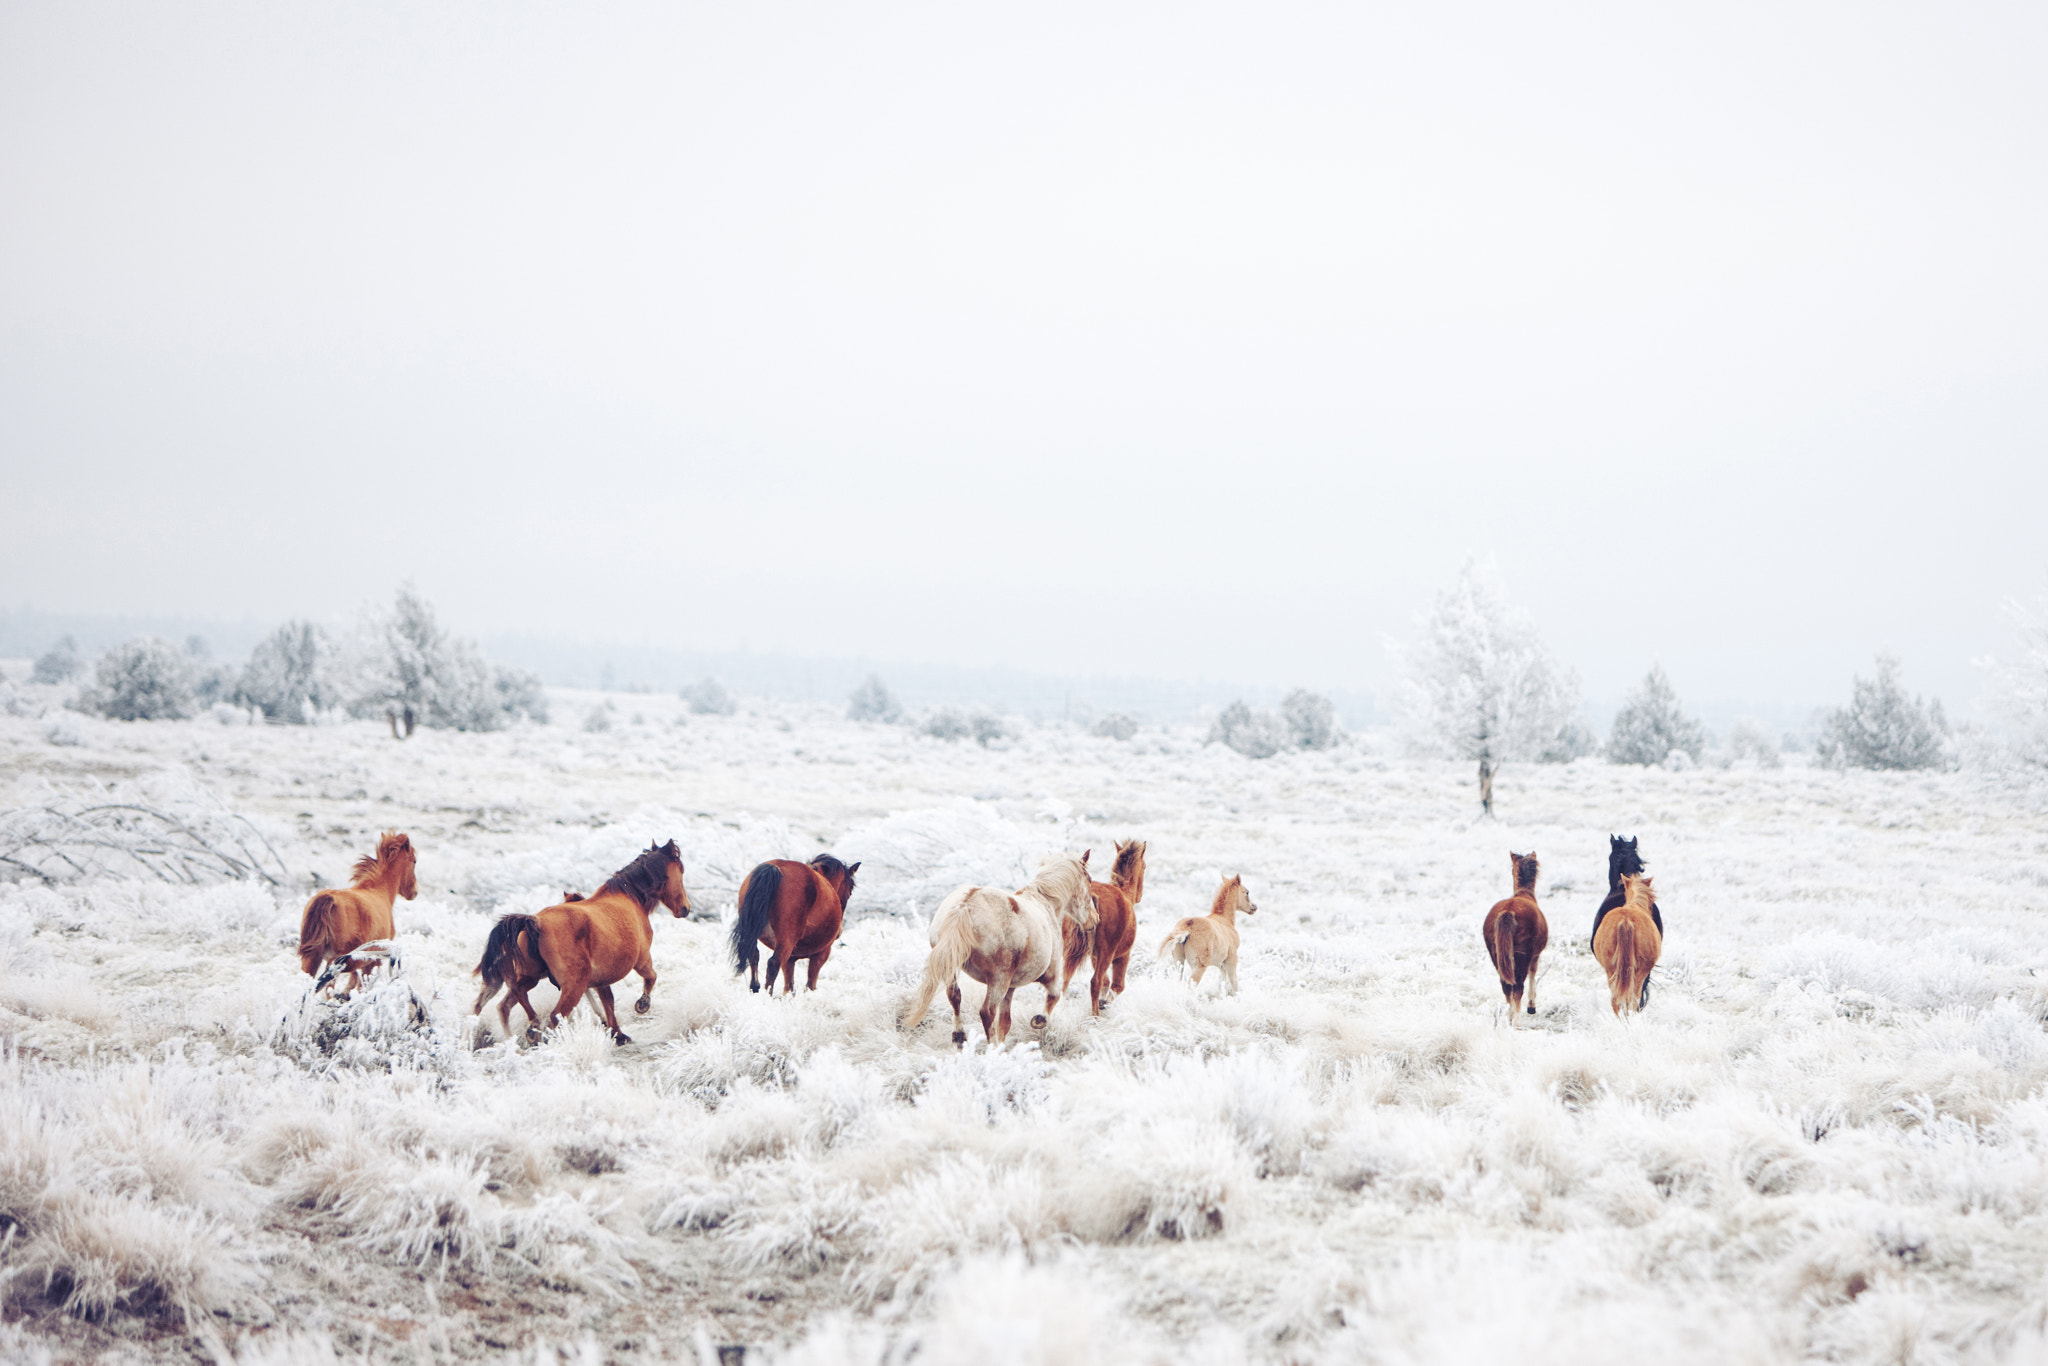 Photograph Winter Horse Run by Kevin Russ on 500px